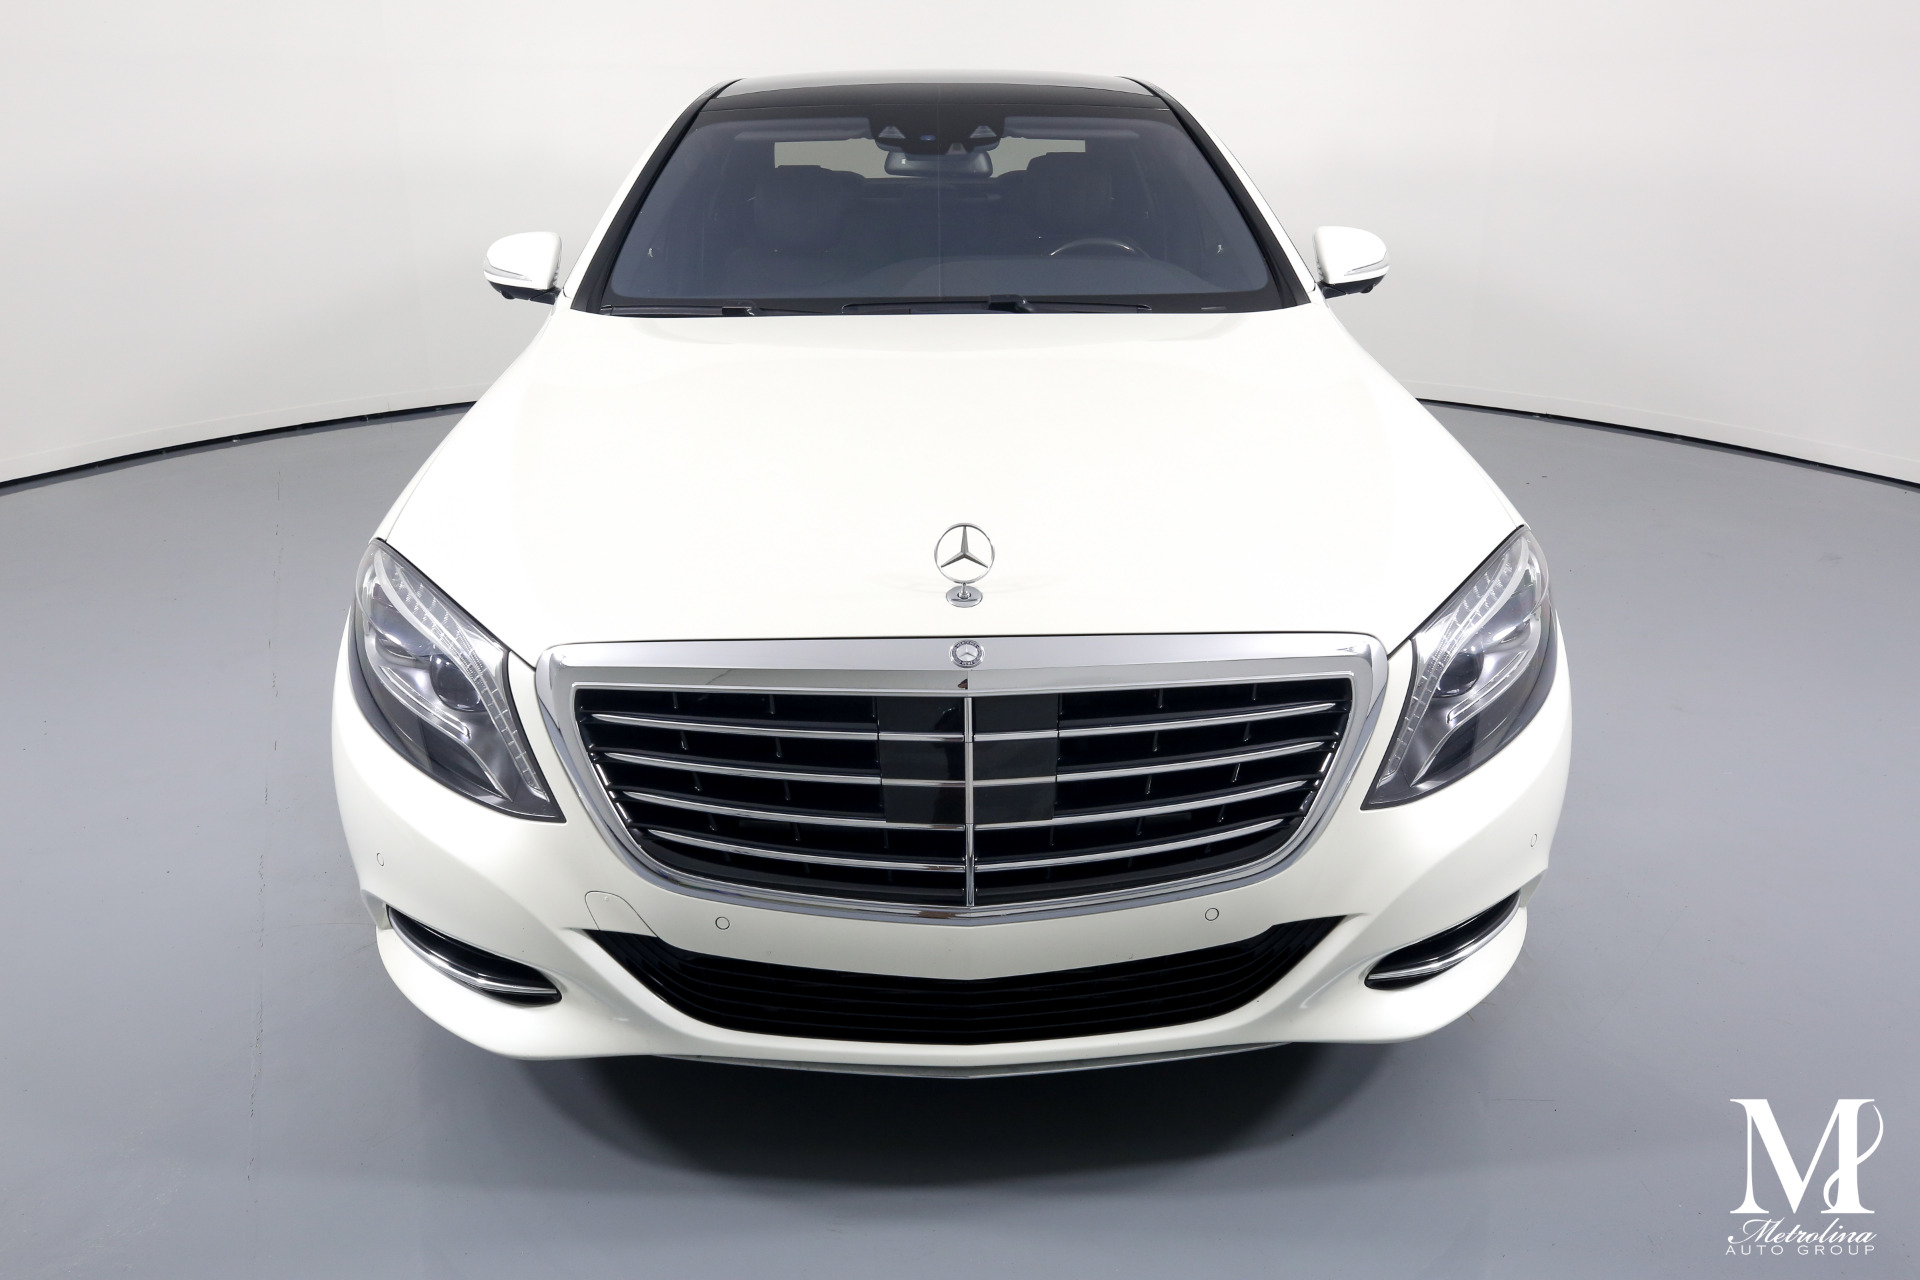 Used 2015 Mercedes-Benz S-Class S 550 4MATIC for sale $49,996 at Metrolina Auto Group in Charlotte NC 28217 - 3